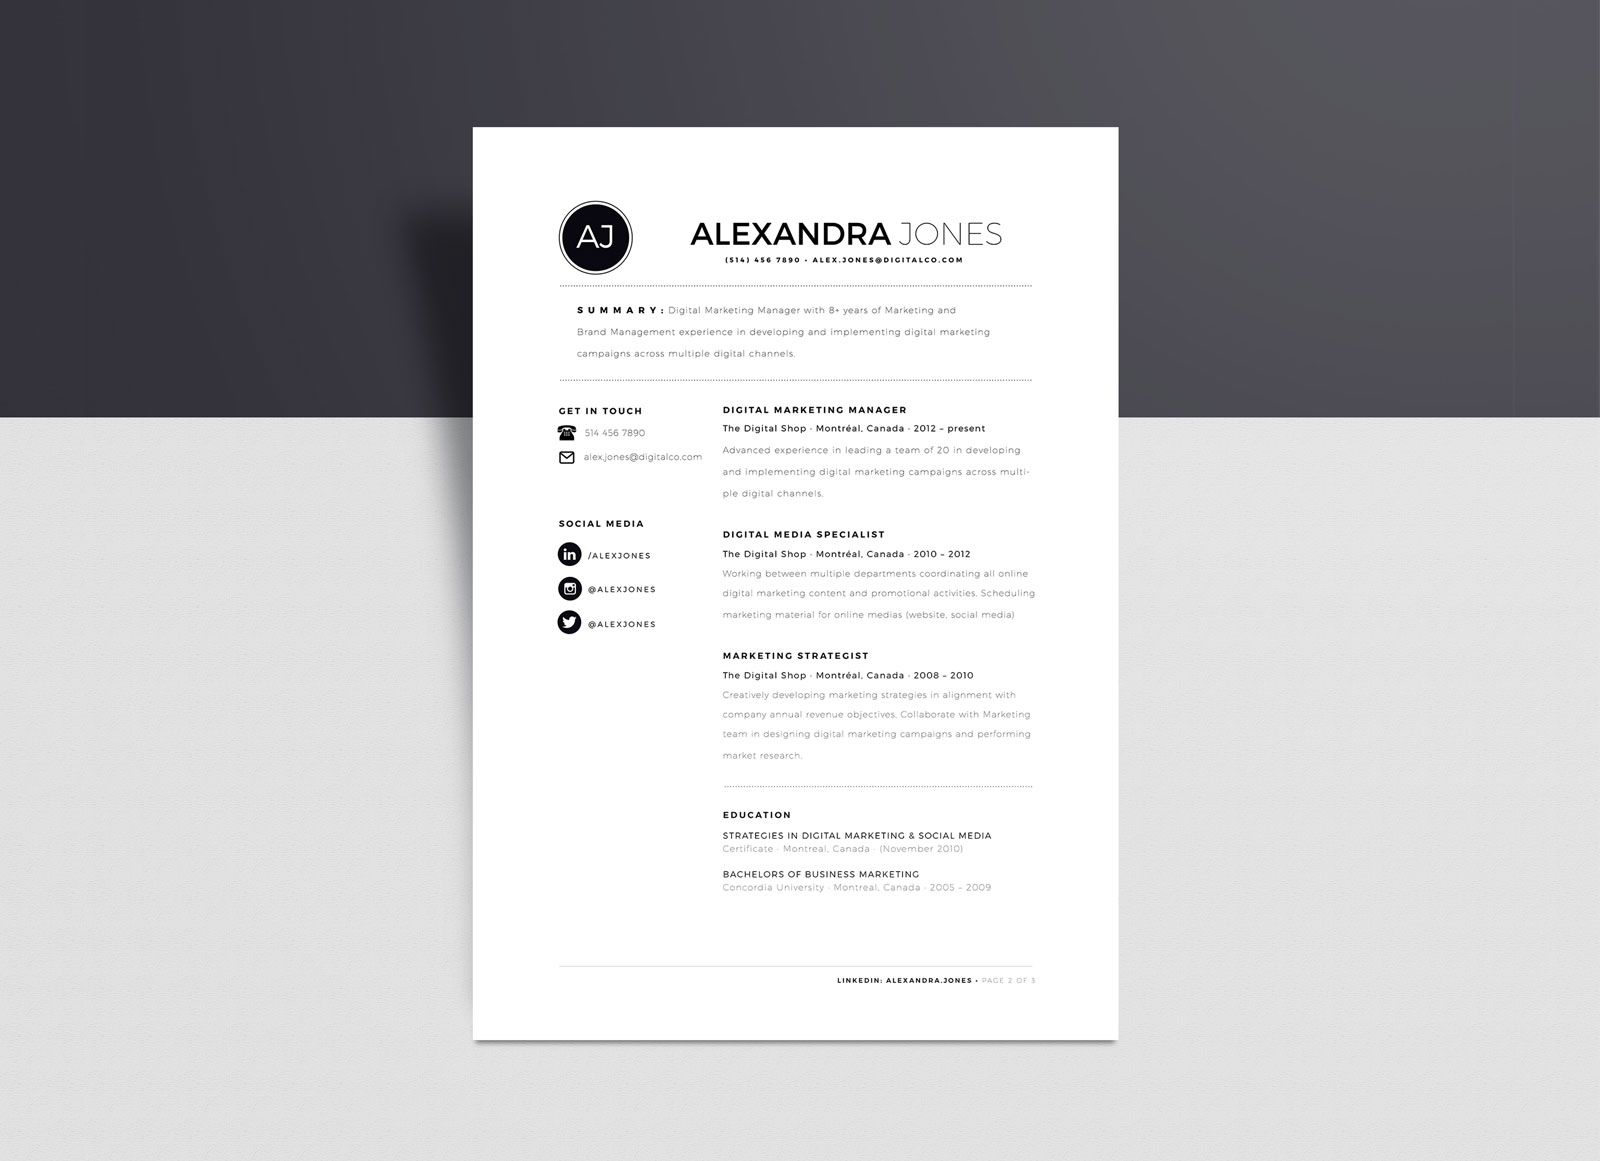 003 Remarkable Word Resume Template Free Image  Fresher Format Download 2020 MFull